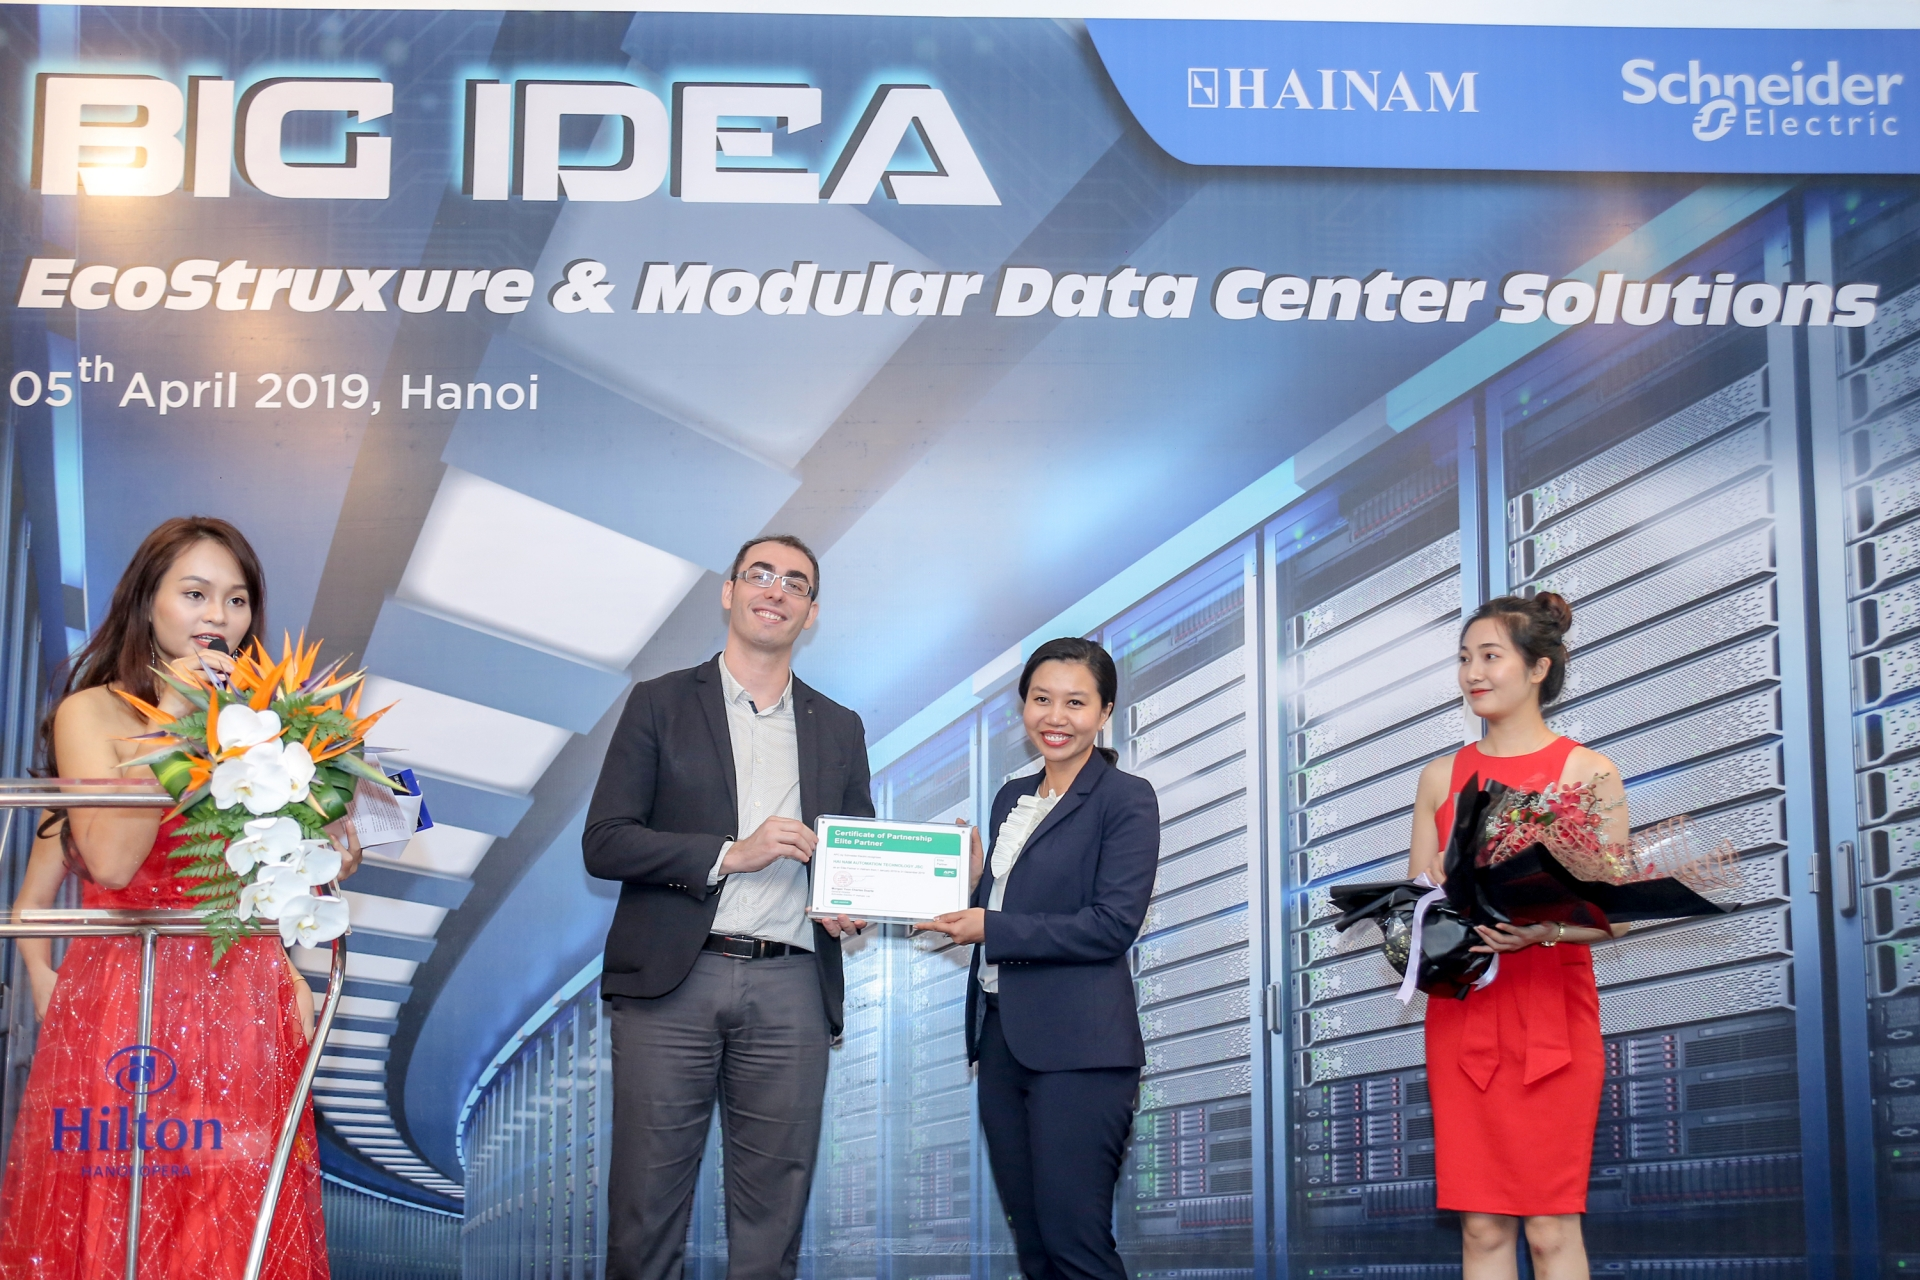 schneider electric it and hai nam sign strategic partnership